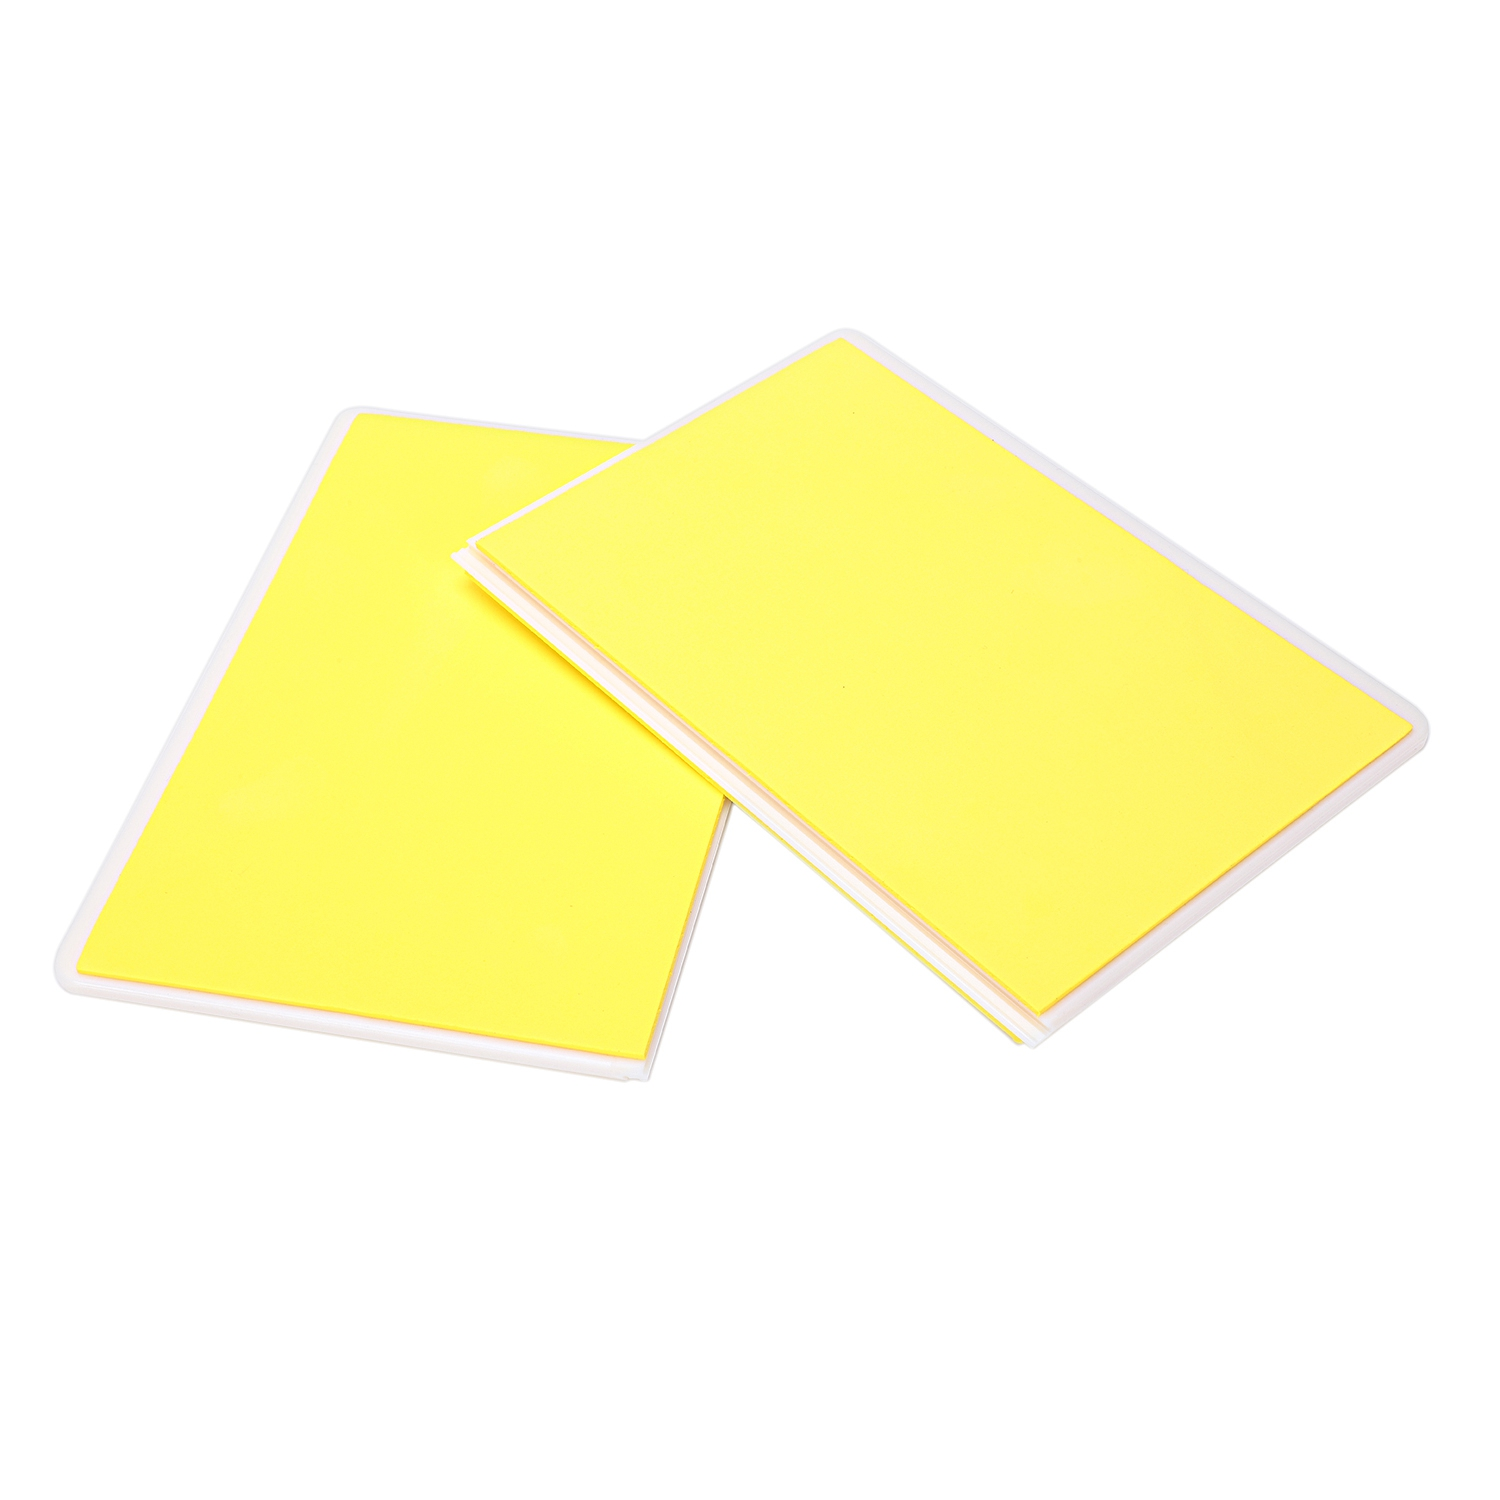 Martial Arts Training Taekwondo Board, Taekwondo Reuse Board, Yellow Belt Taekwondo Training Committee